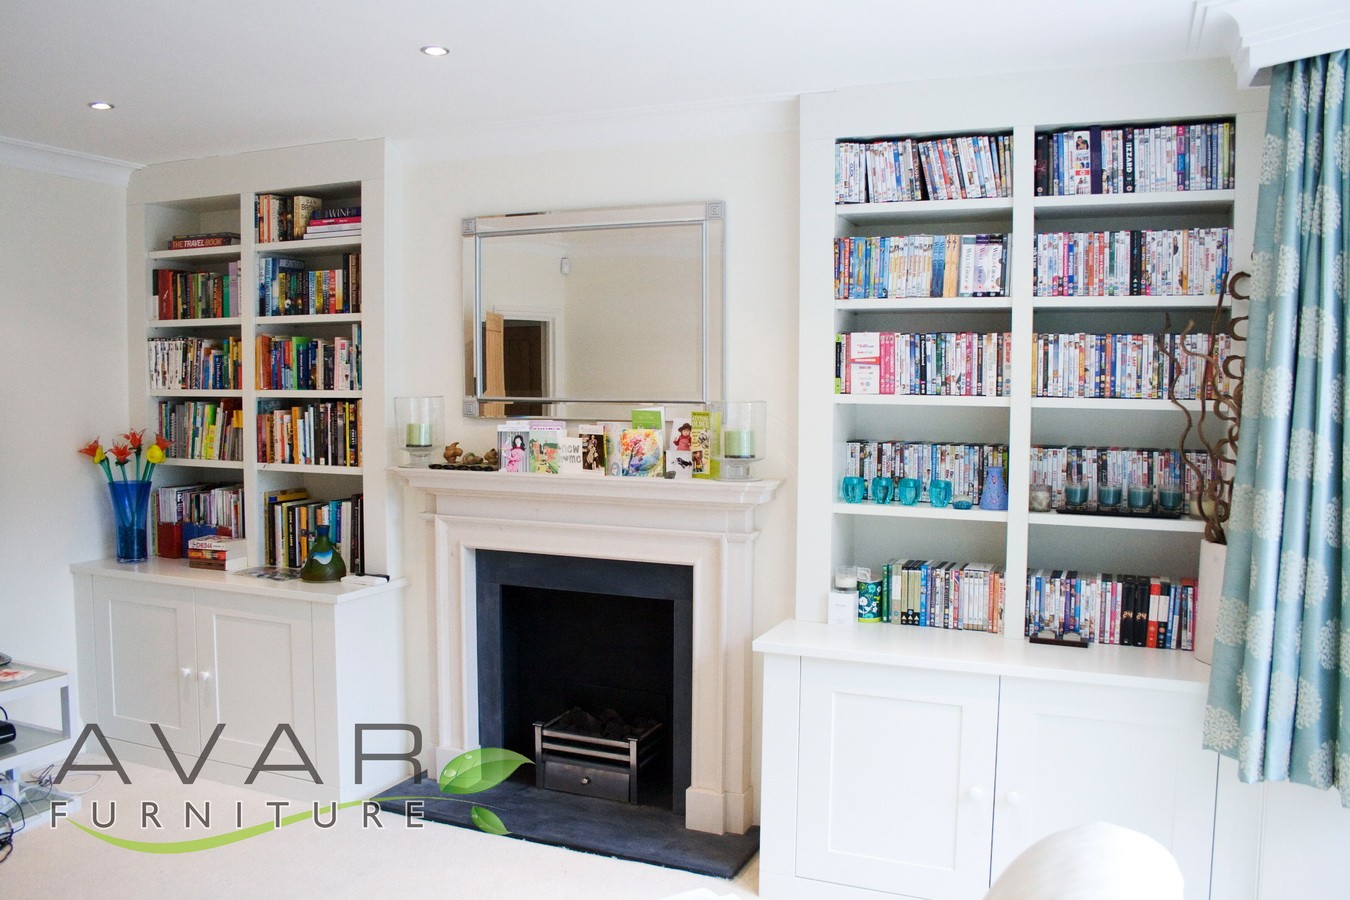 Fitted wardrobe ideas gallery 3 north london uk avar furniture - Alcove Units Ideas Gallery 5 North London Uk